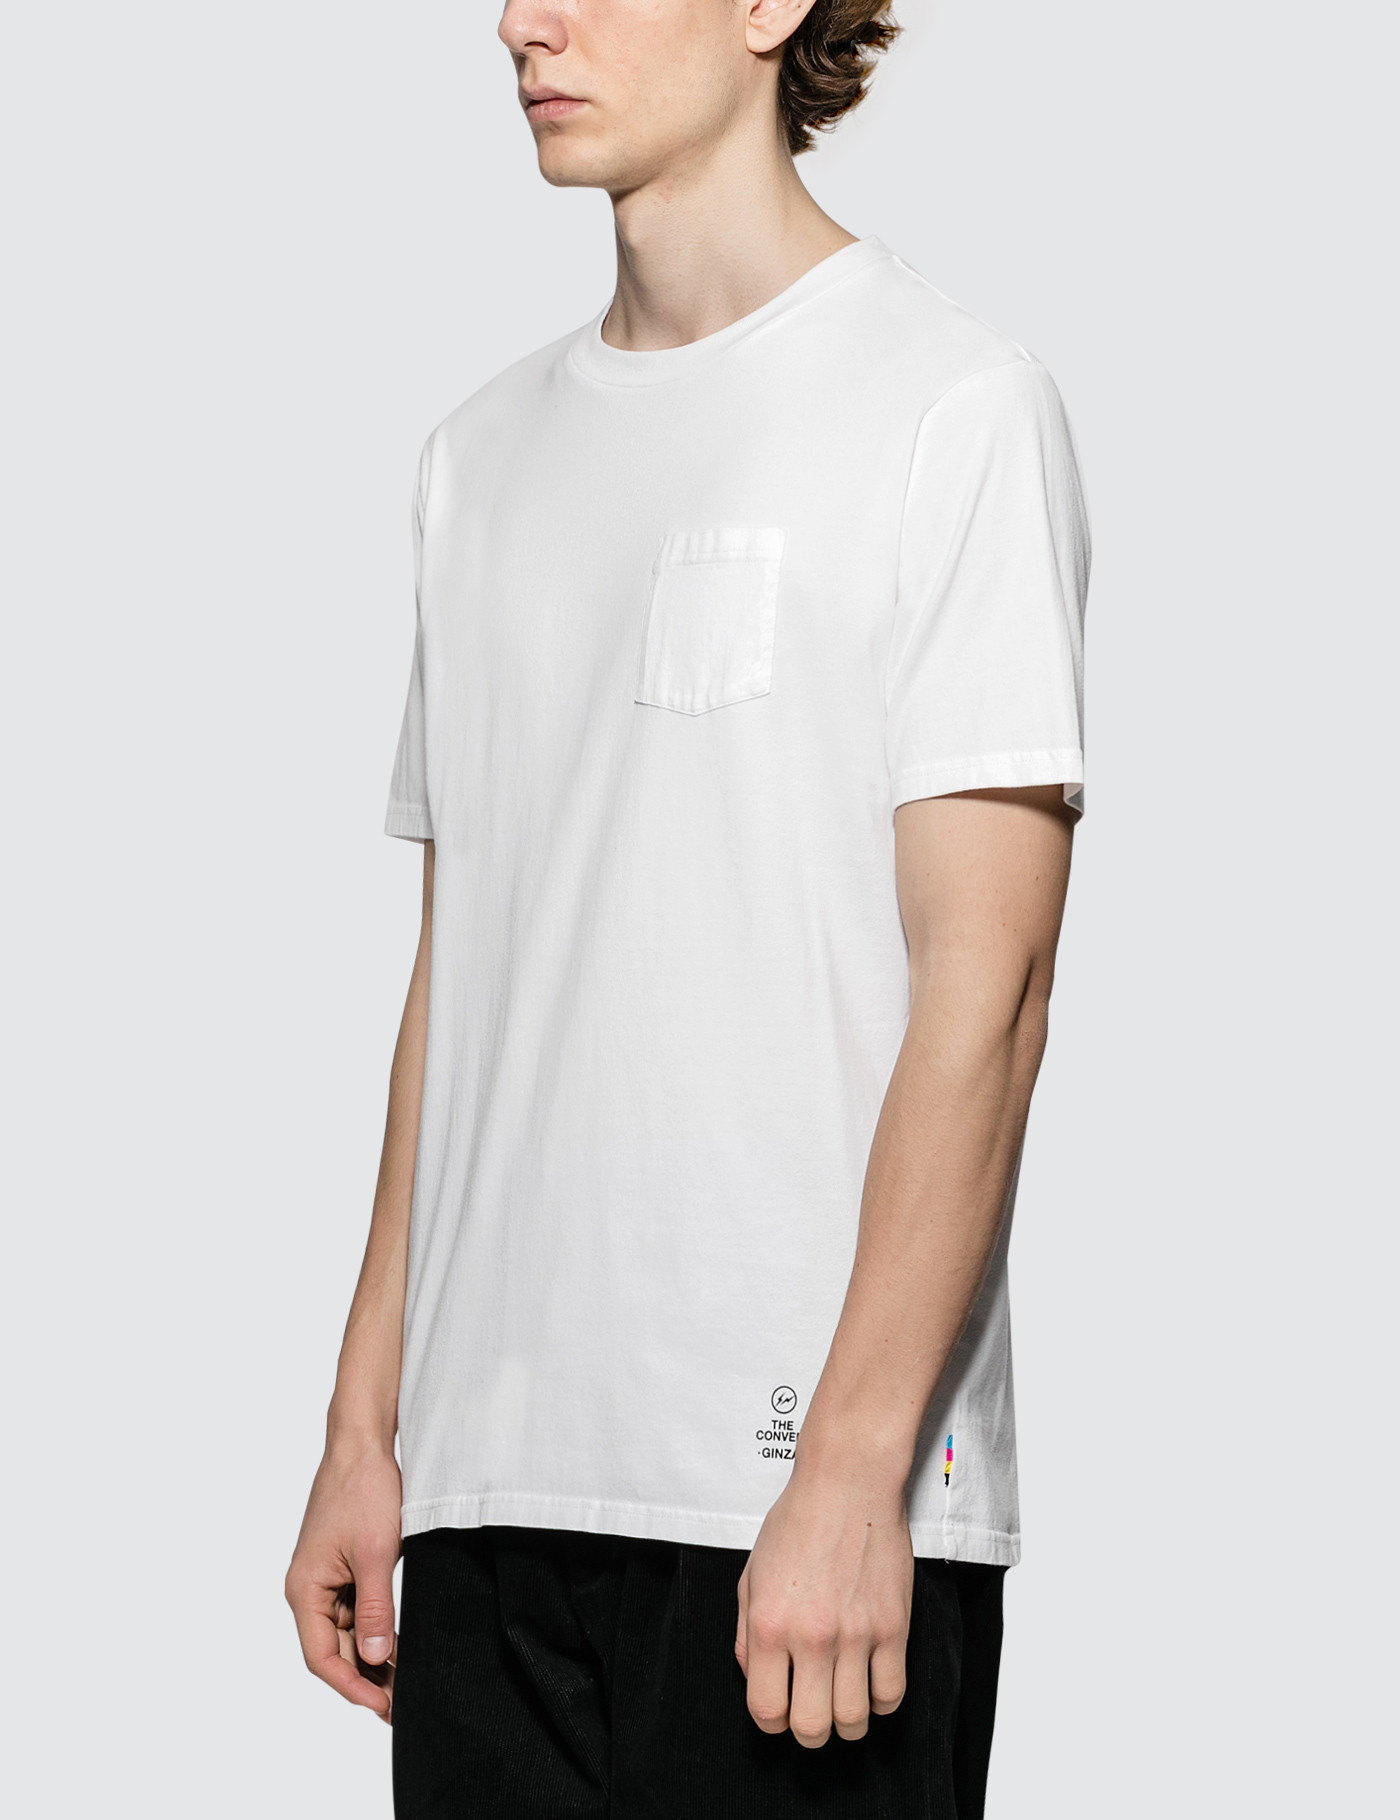 The Conveni FRGMT x  S/S T-Shirt